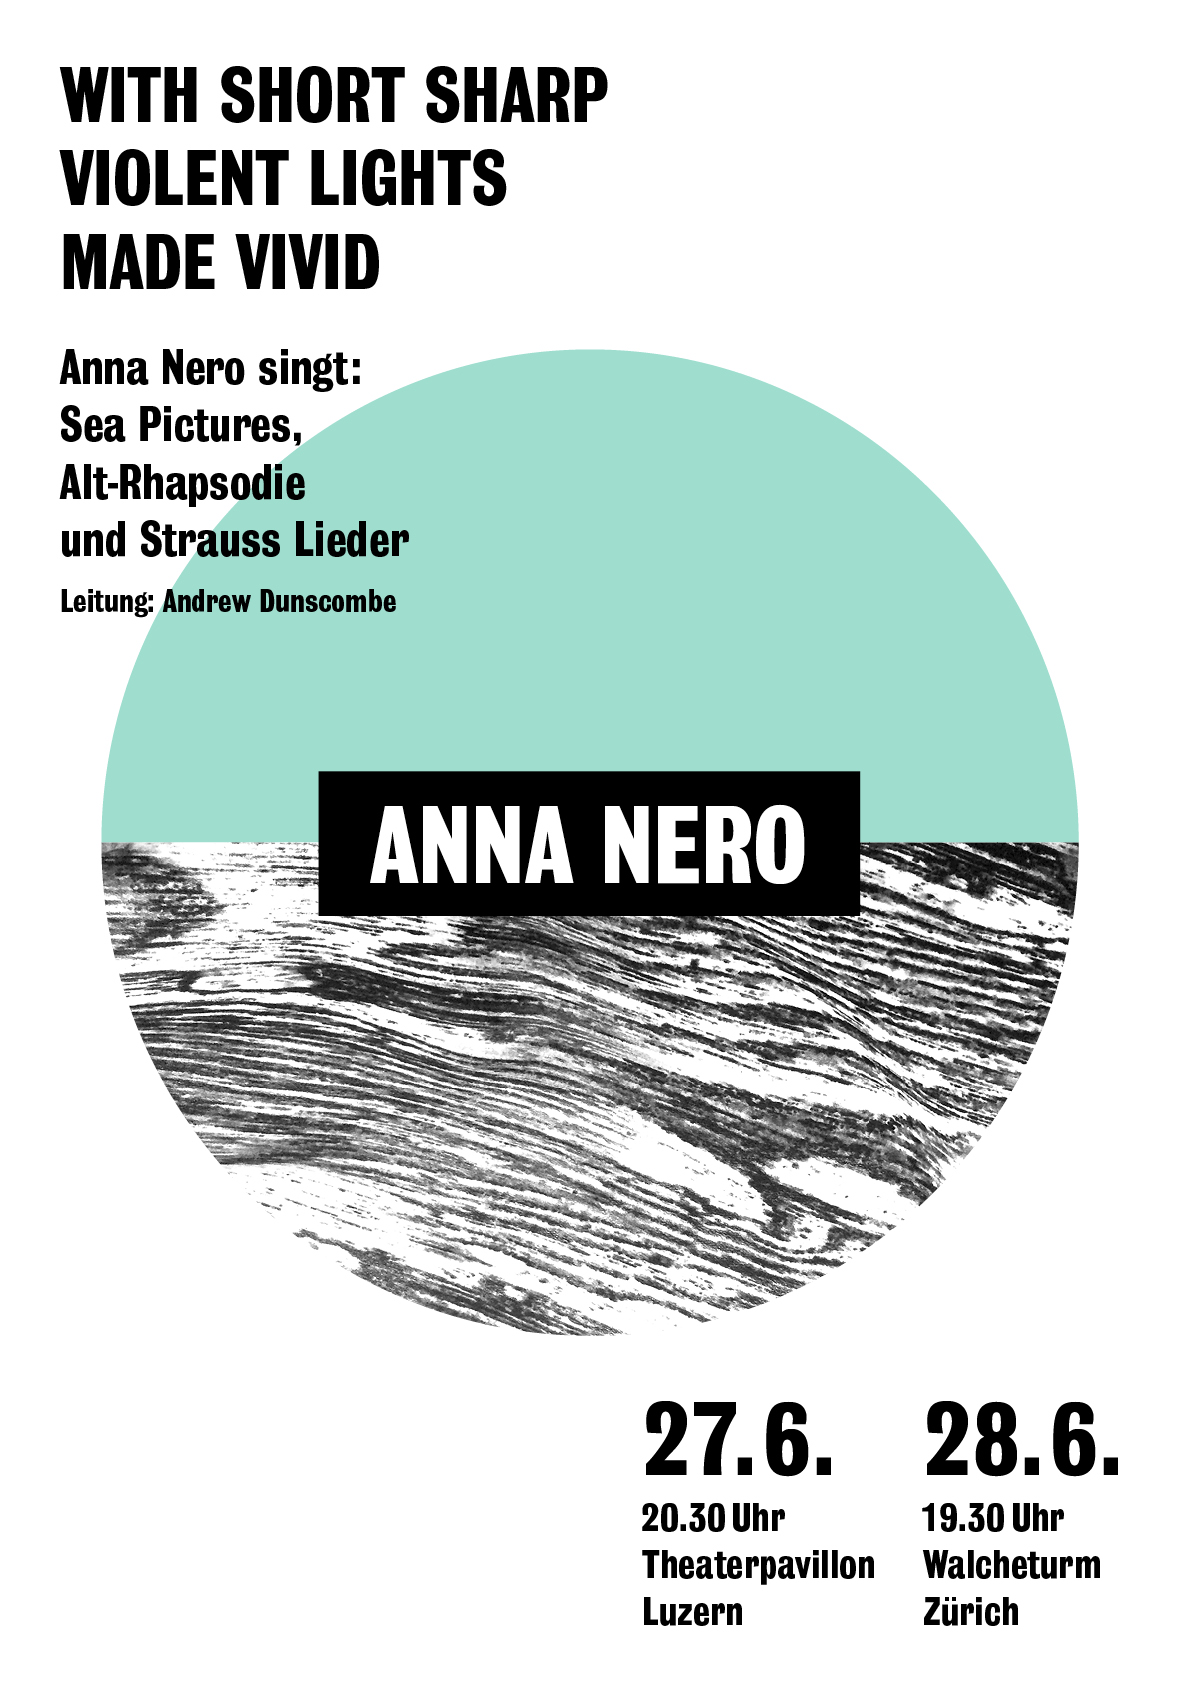 annanero_flyer_digital_def